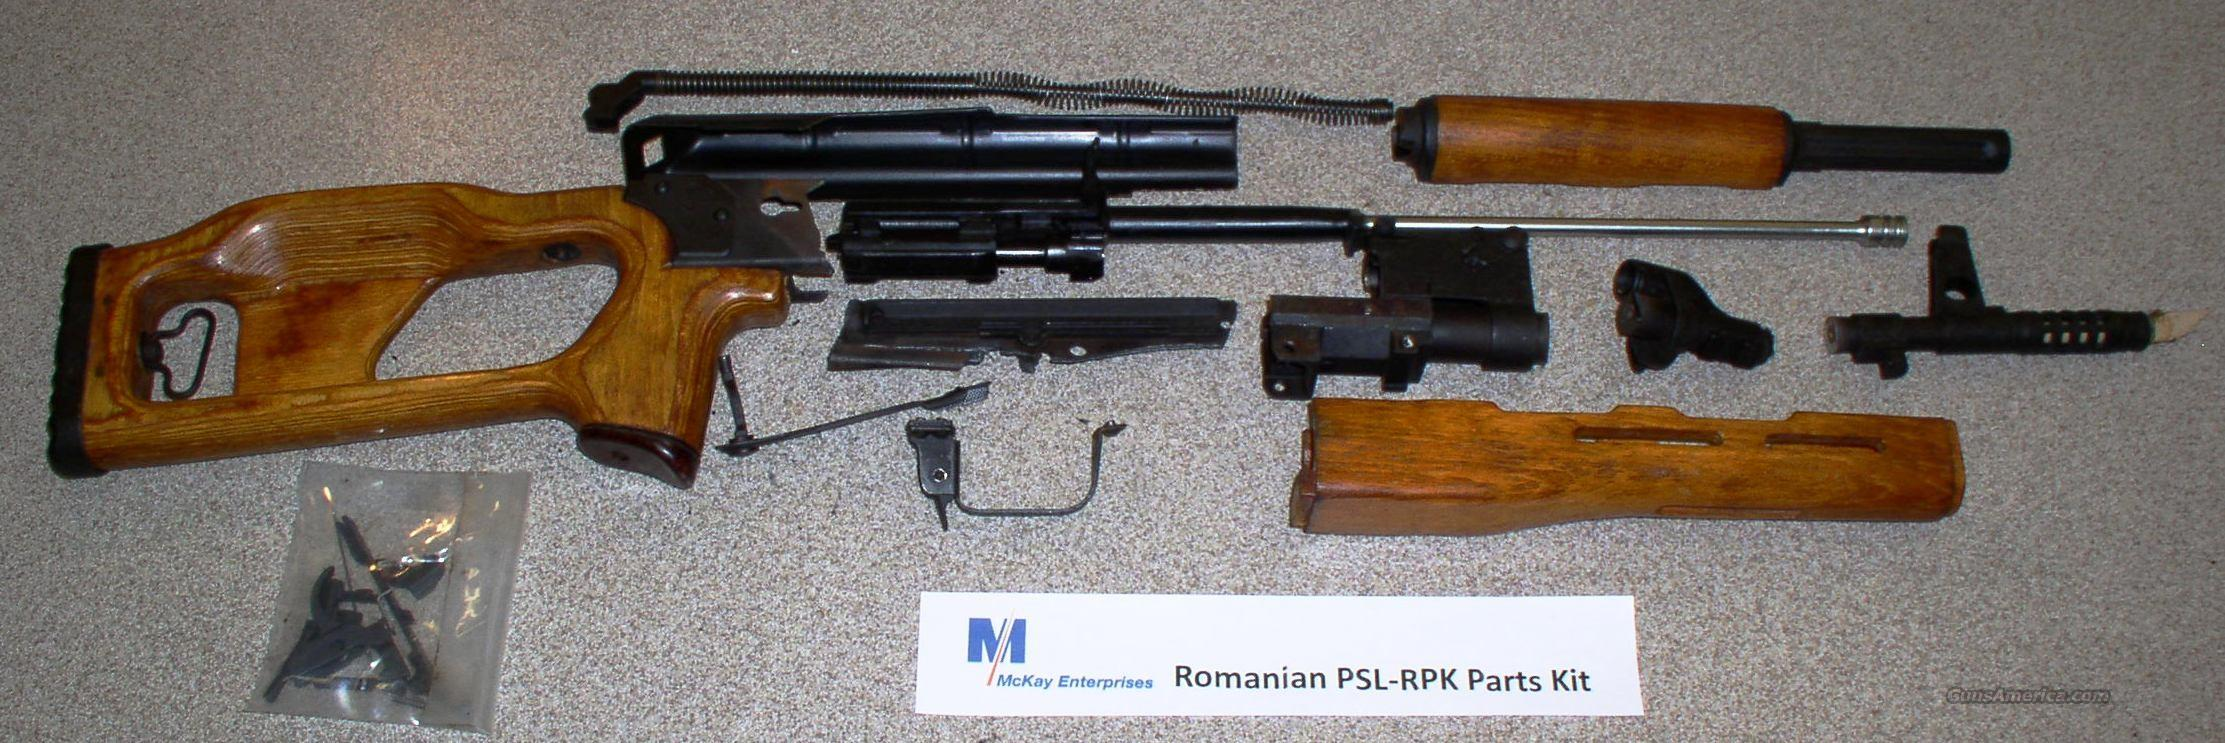 PSL-RPK PARTS KIT  Guns > Rifles > AK-47 Rifles (and copies) > Full Stock